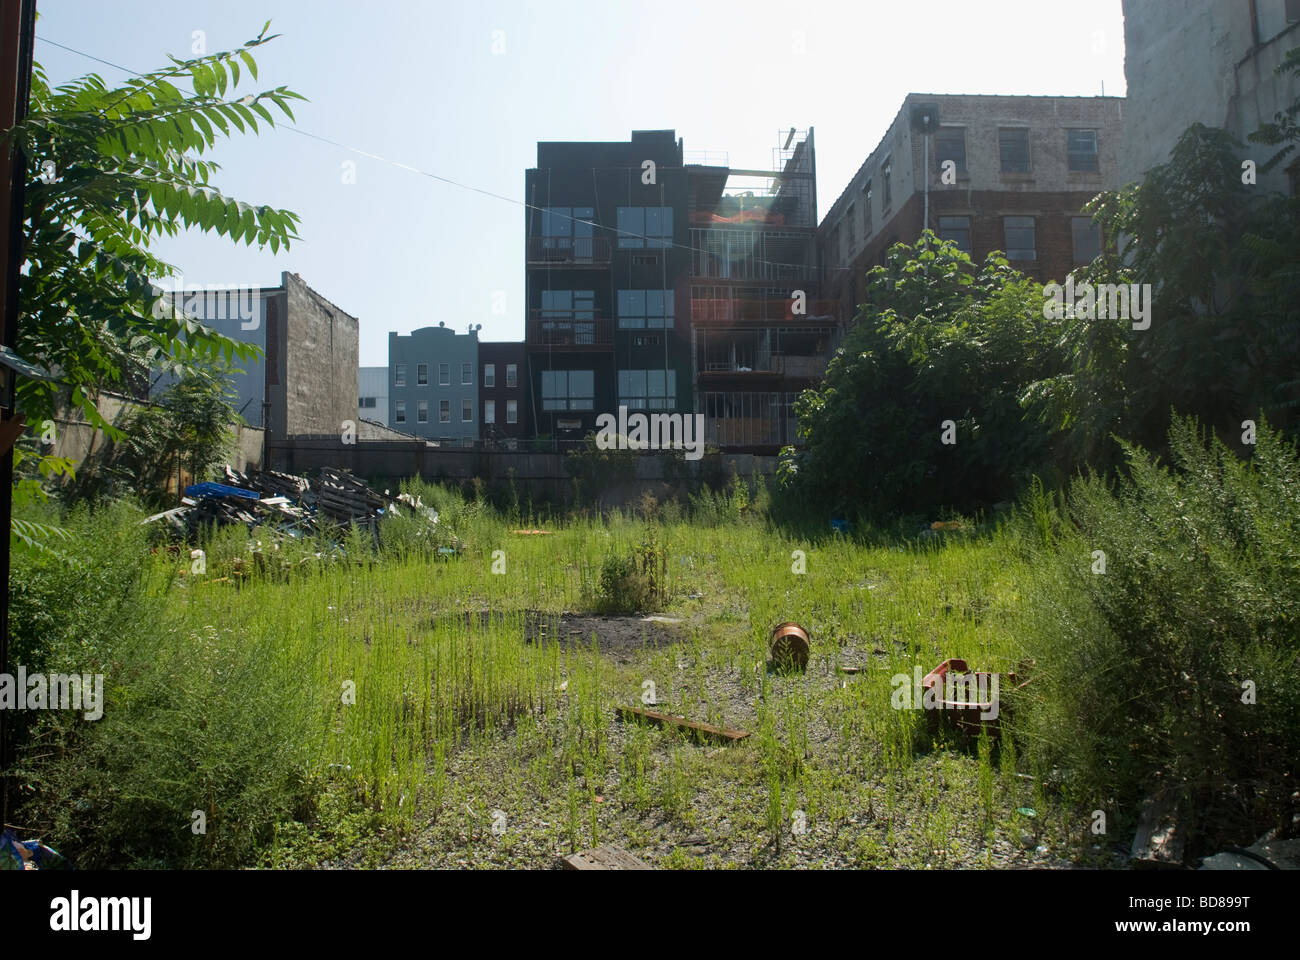 A vacant undeveloped lot in the Williamsburg neighborhood of Brooklyn in New York - Stock Image